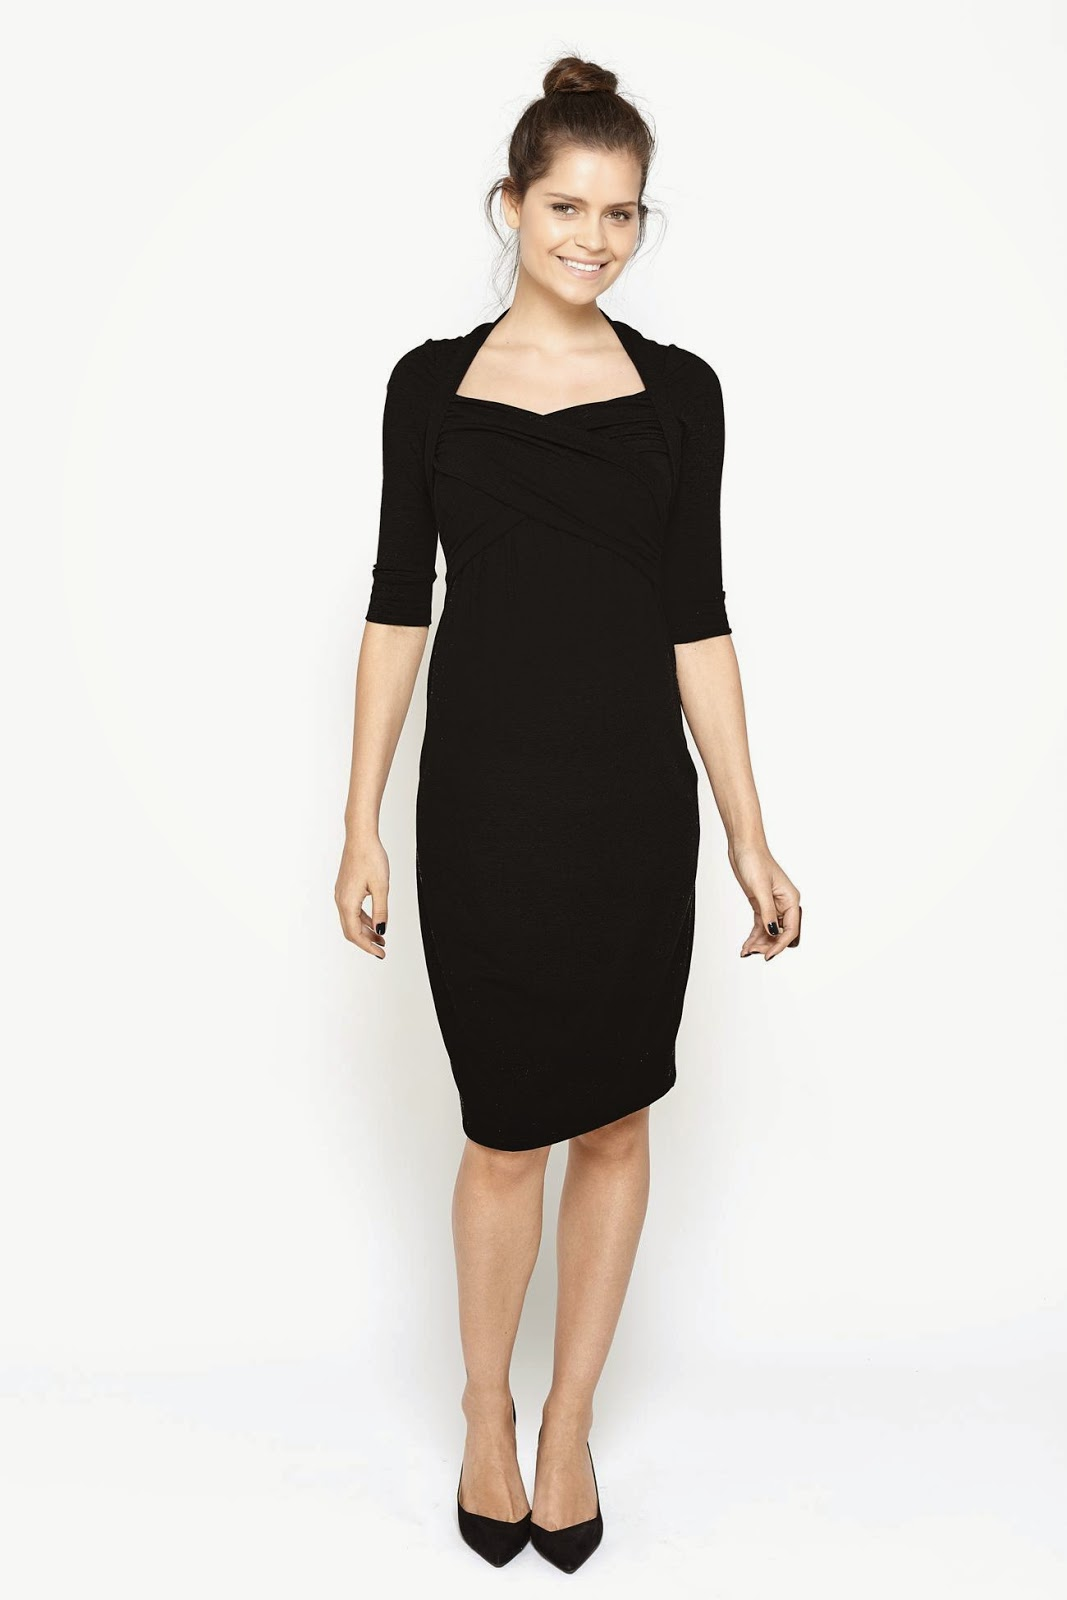 Mode Sty A Bump In The Night Black Maternity Dresses